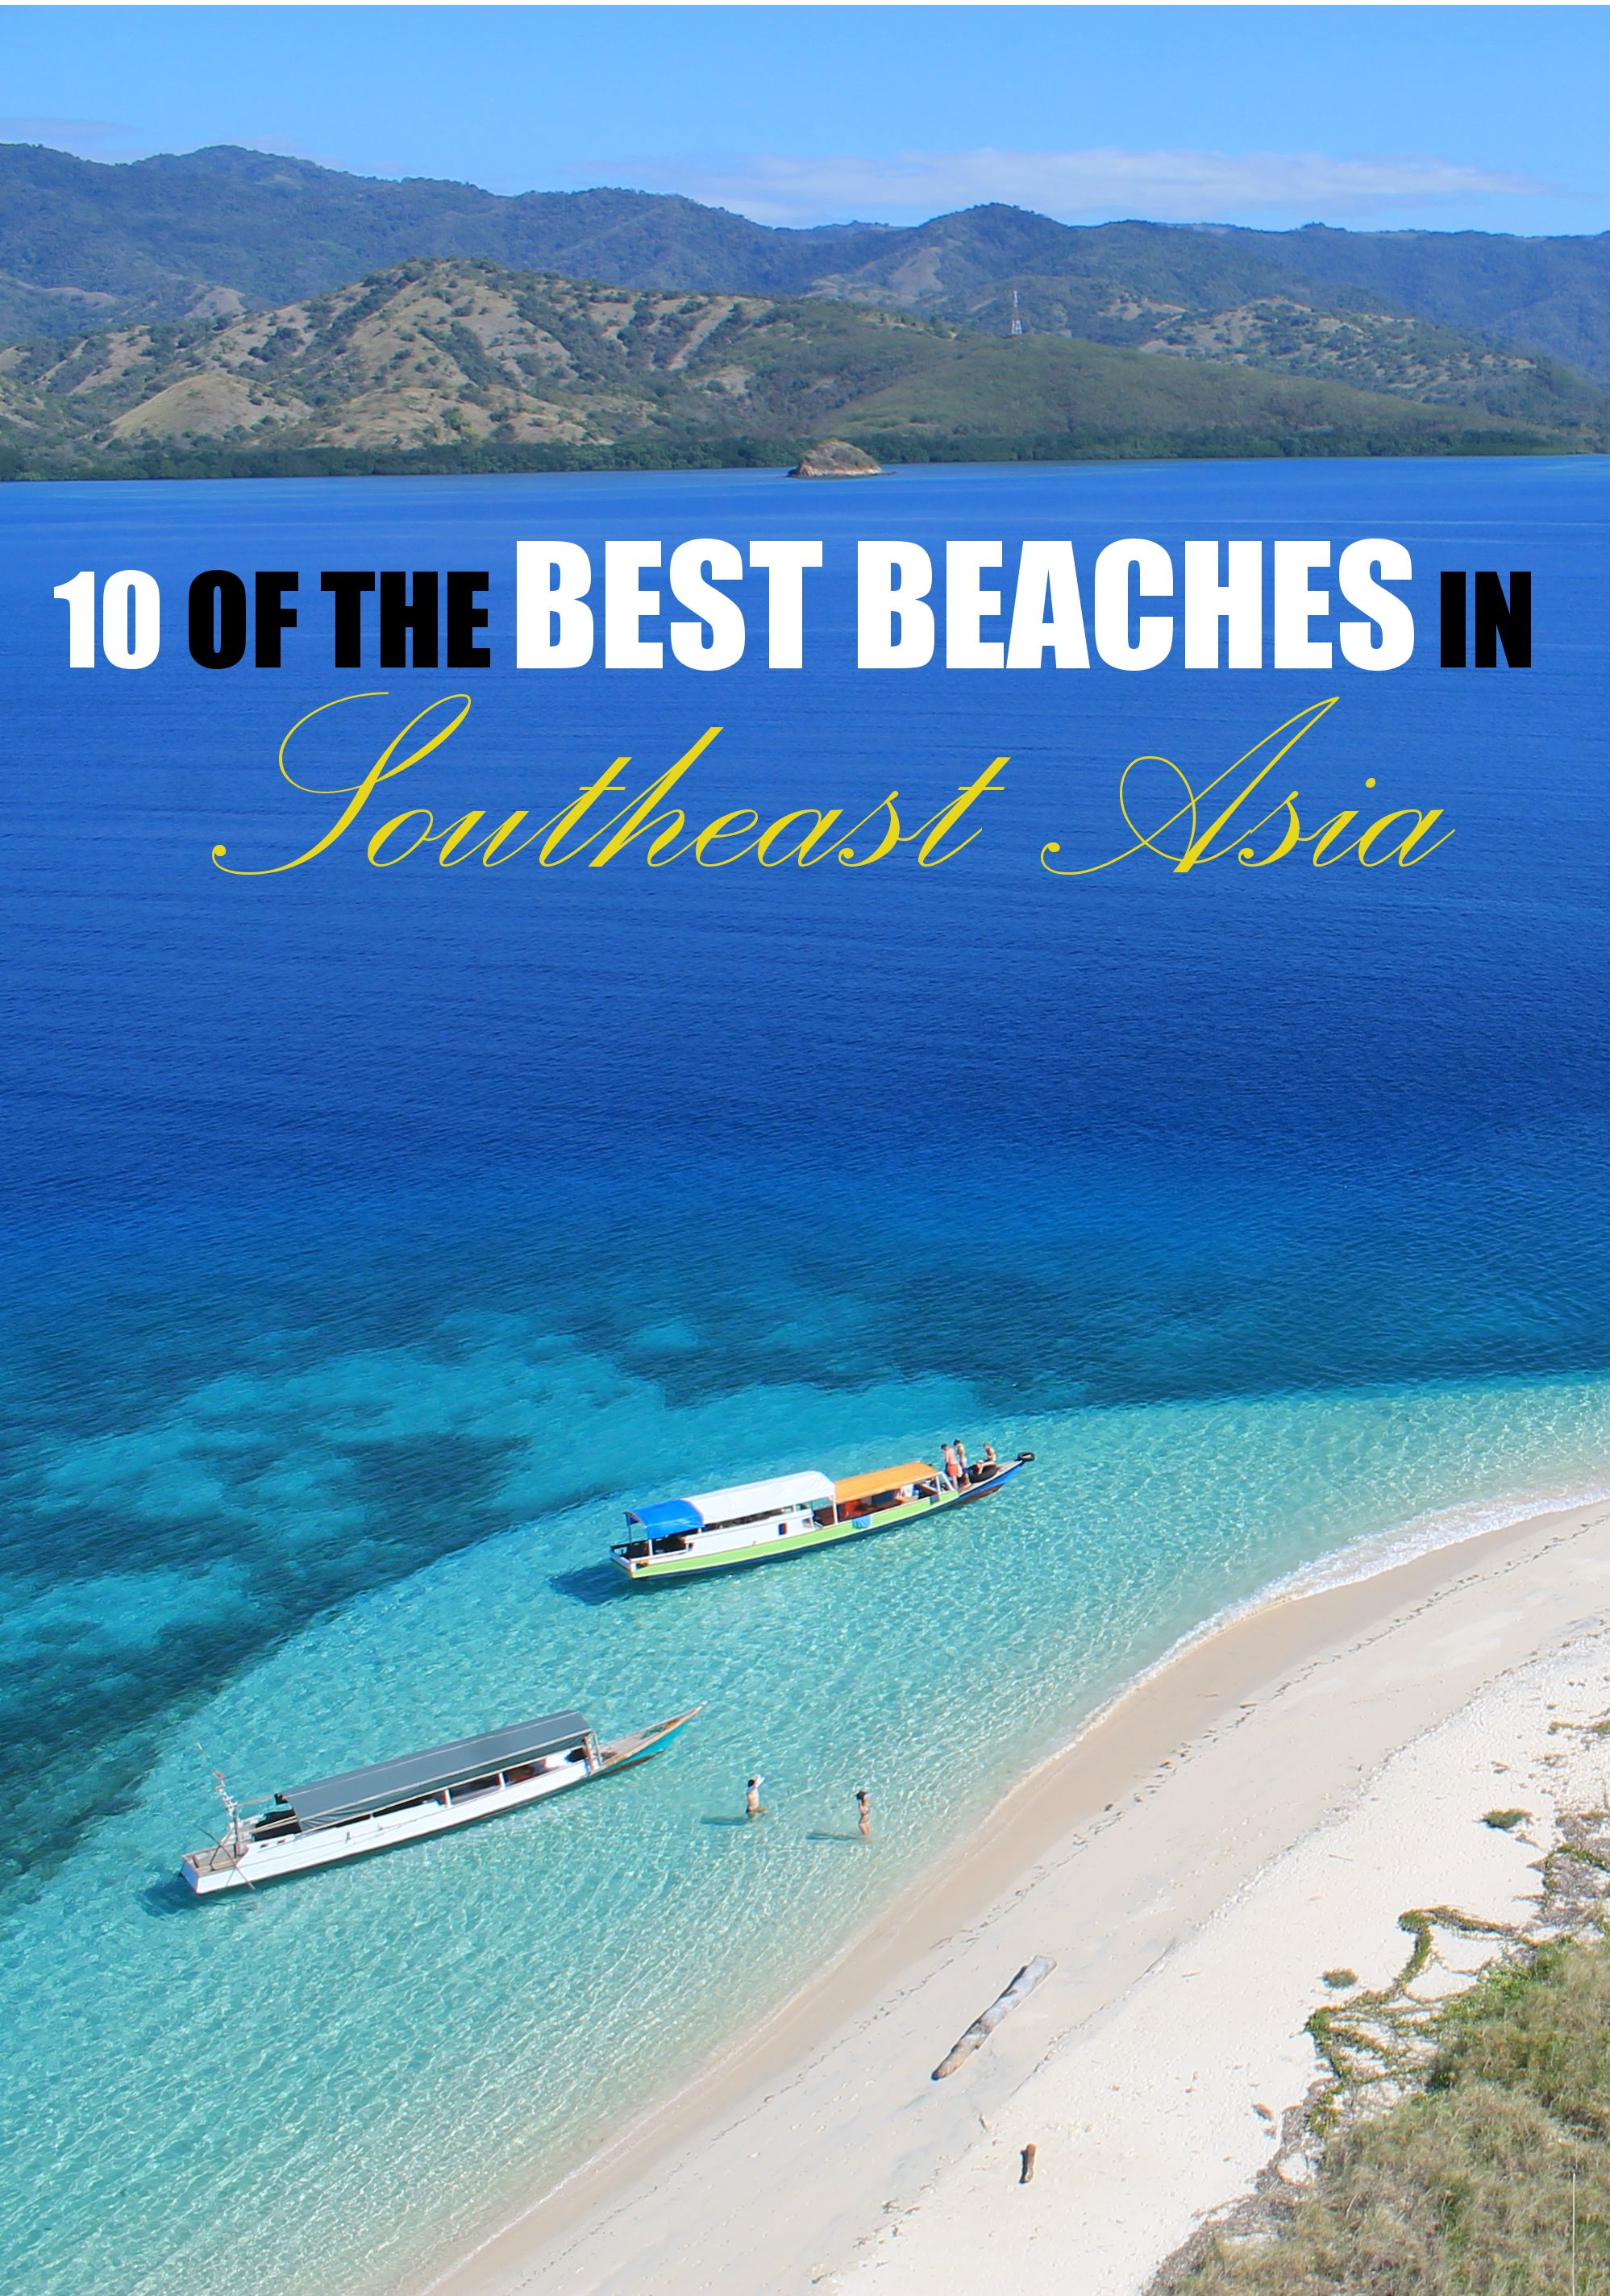 10 of the best beaches in southeast asia sun beaches for Best beaches in southeast us